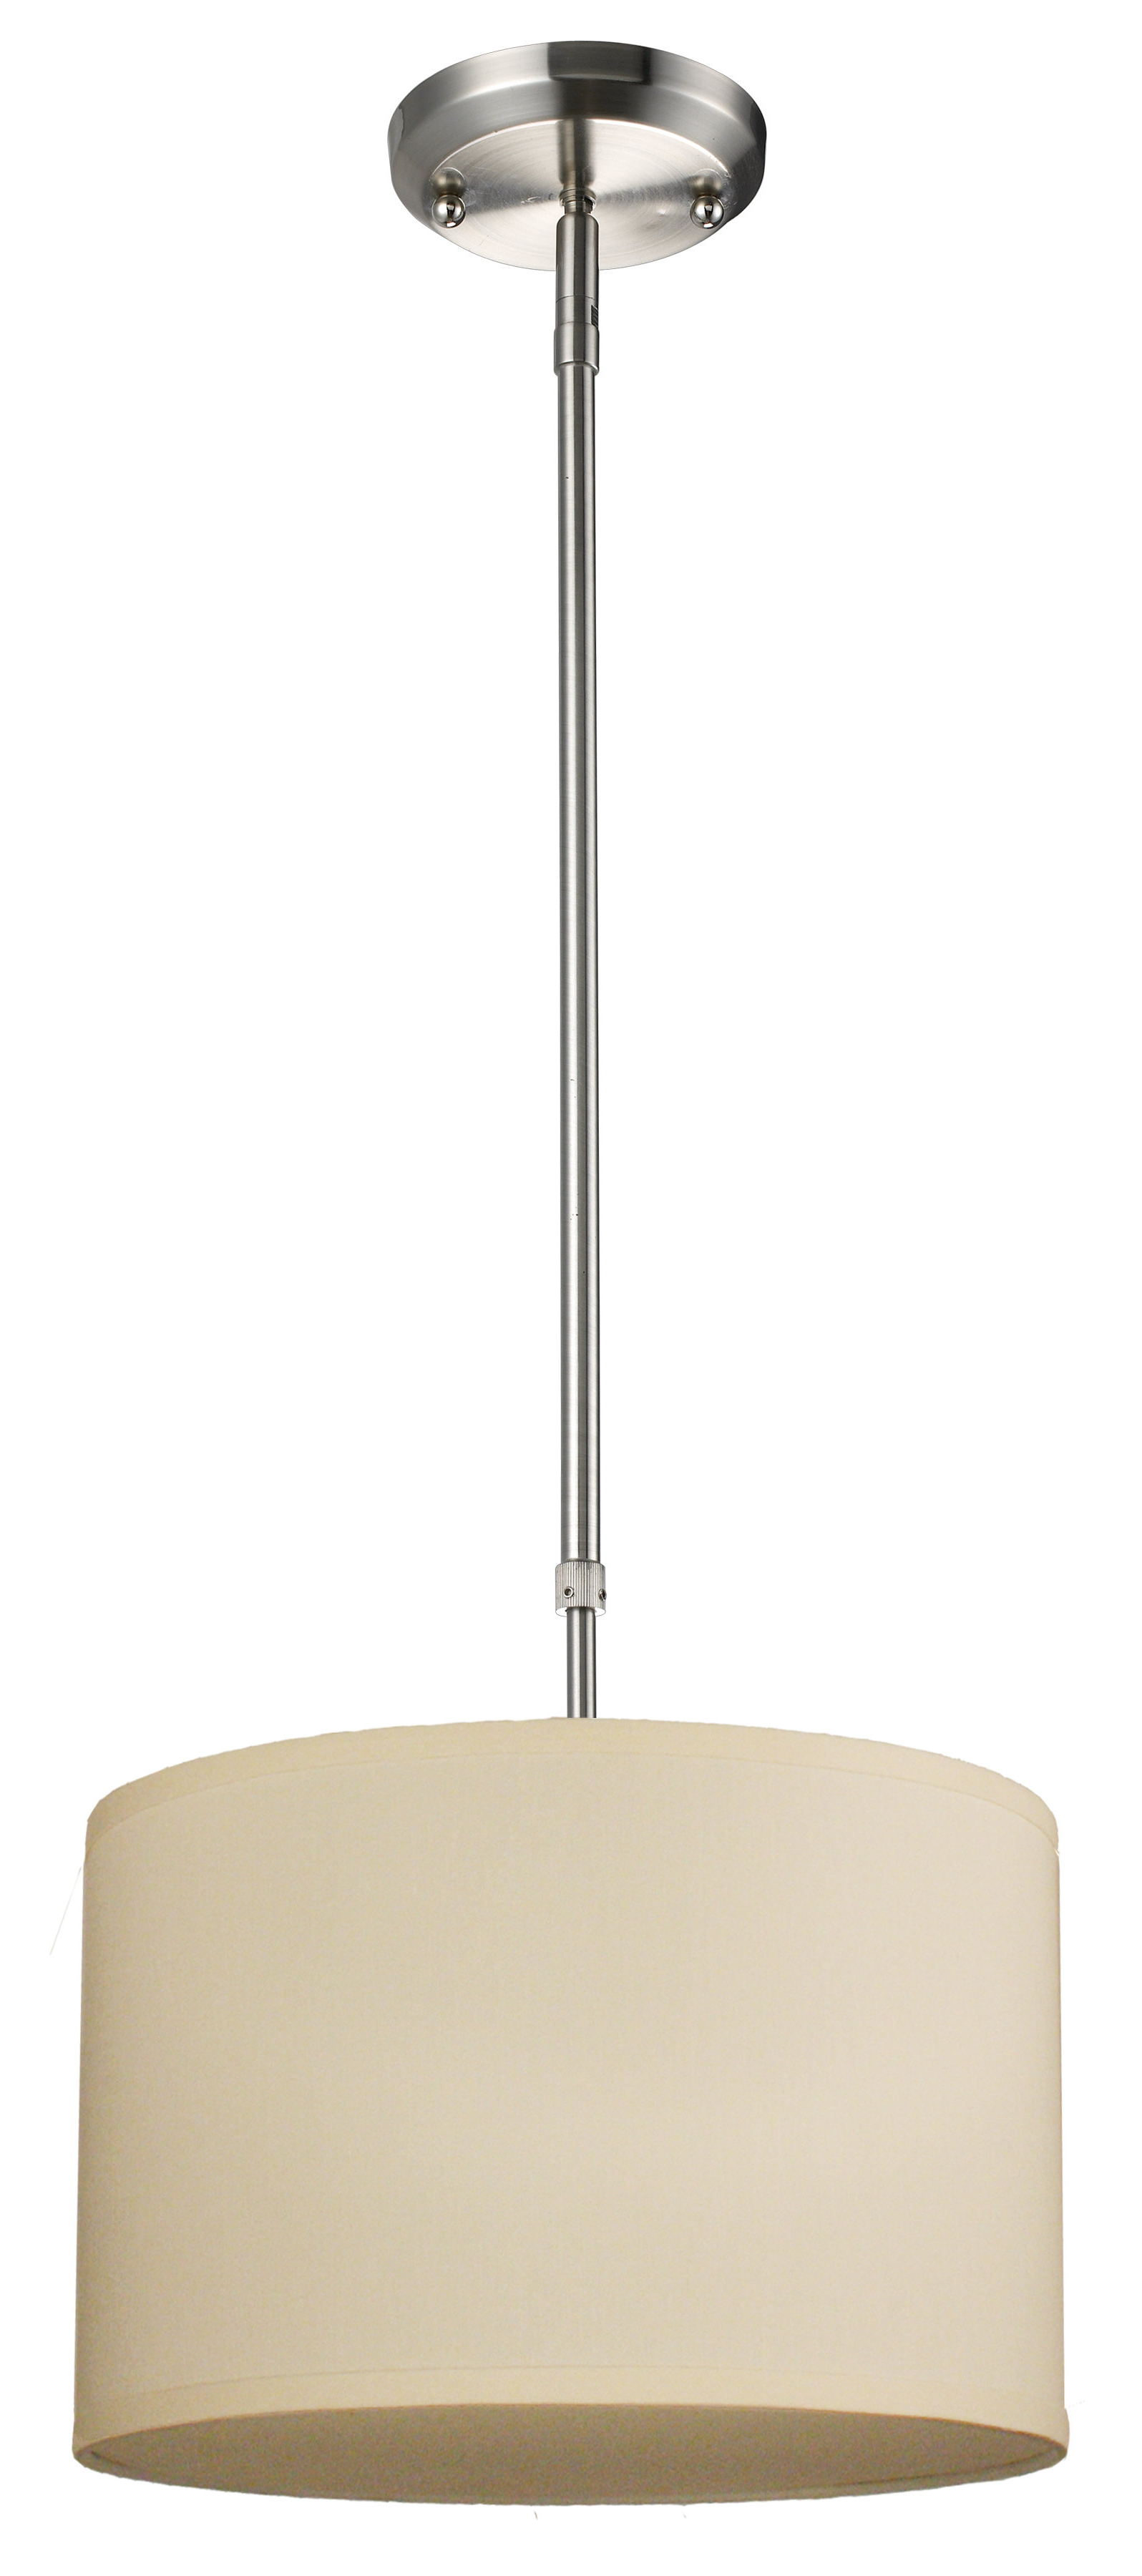 Most Up To Date Kasey 1 Light Single Drum Pendant Inside Kasey 3 Light Single Drum Pendants (Gallery 11 of 20)